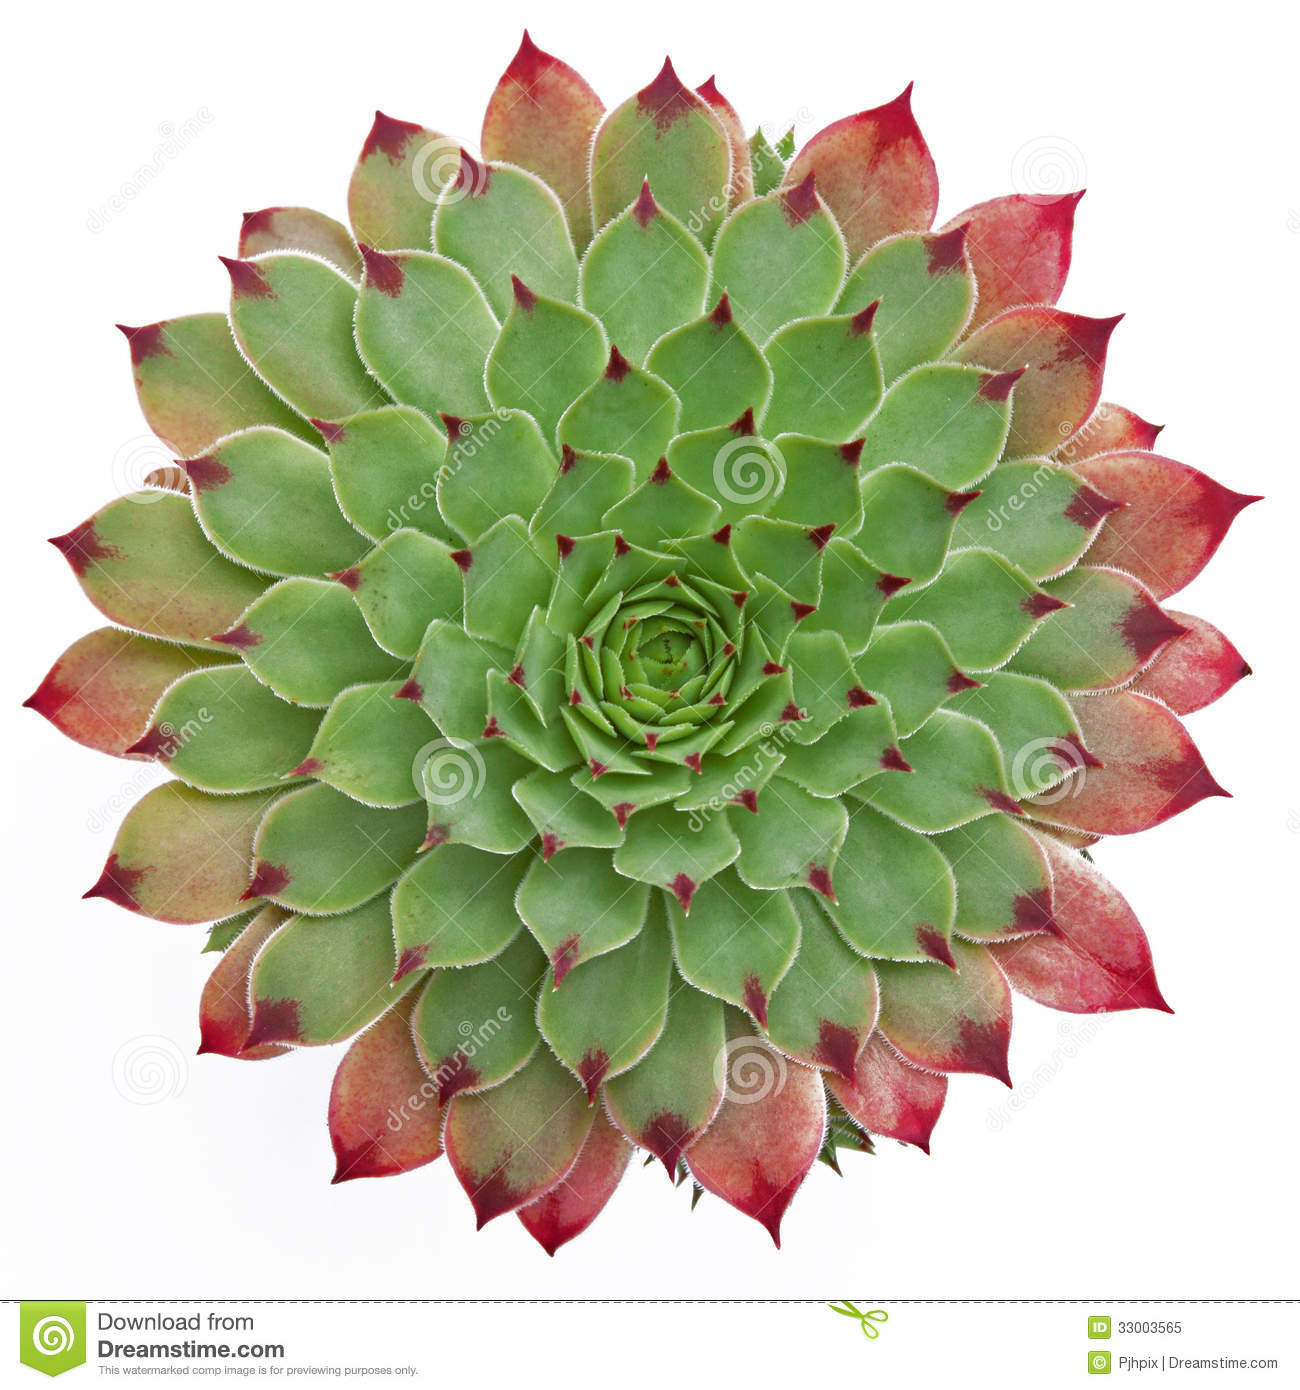 Succulent Pattern Royalty Free Stock Photo - Image: 33003565